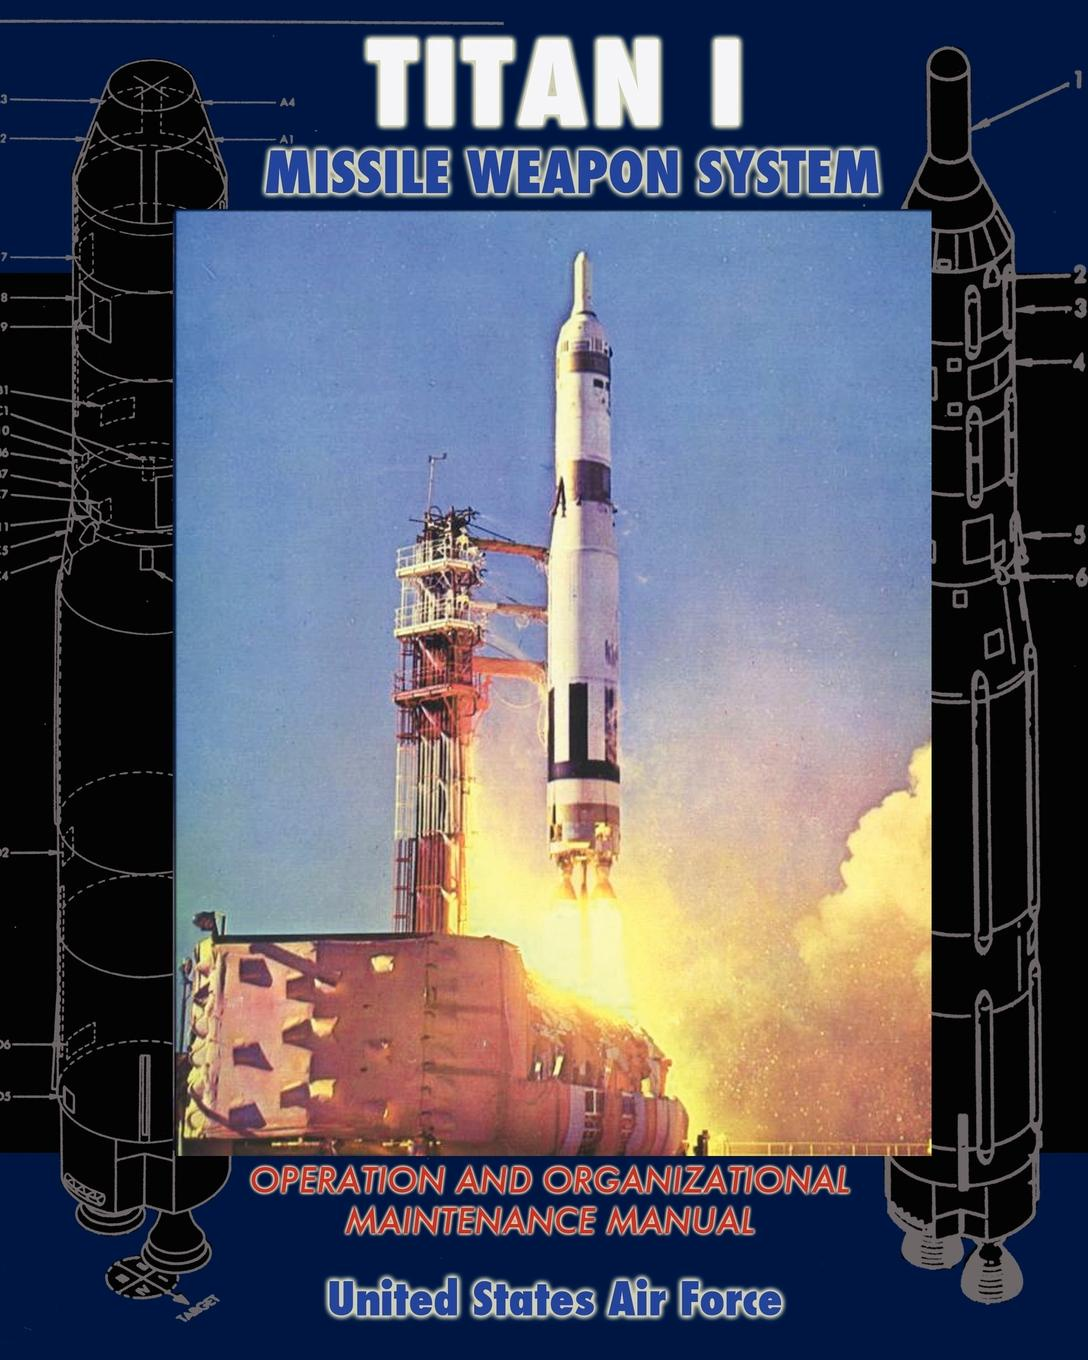 United States Air Force Titan I Missile Weapon System Operation and Organizational Maintenance Manual